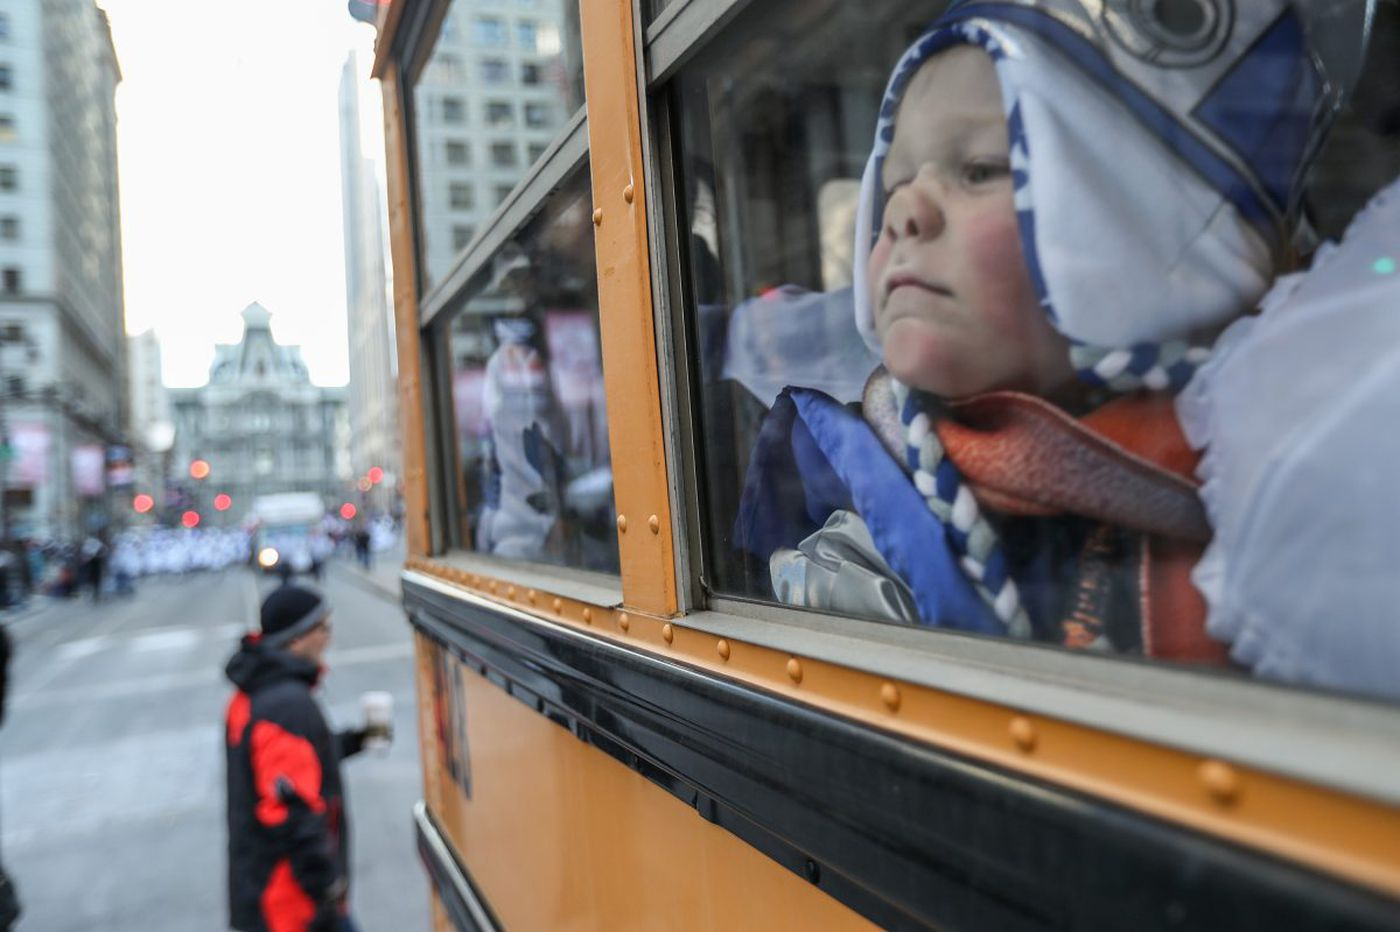 For Mummers, only the hardiest of fans brave cold